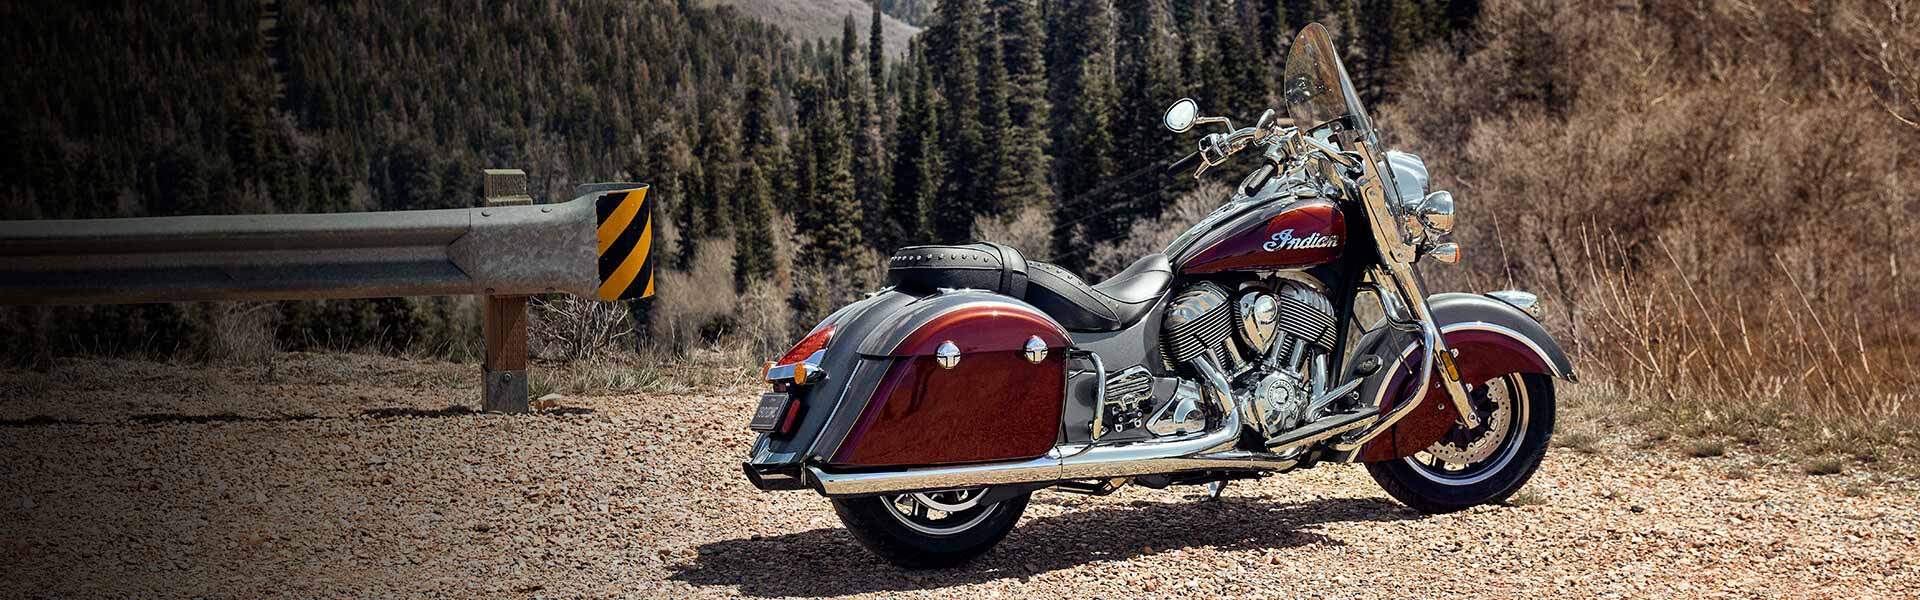 Indian Motorcycles Springfield